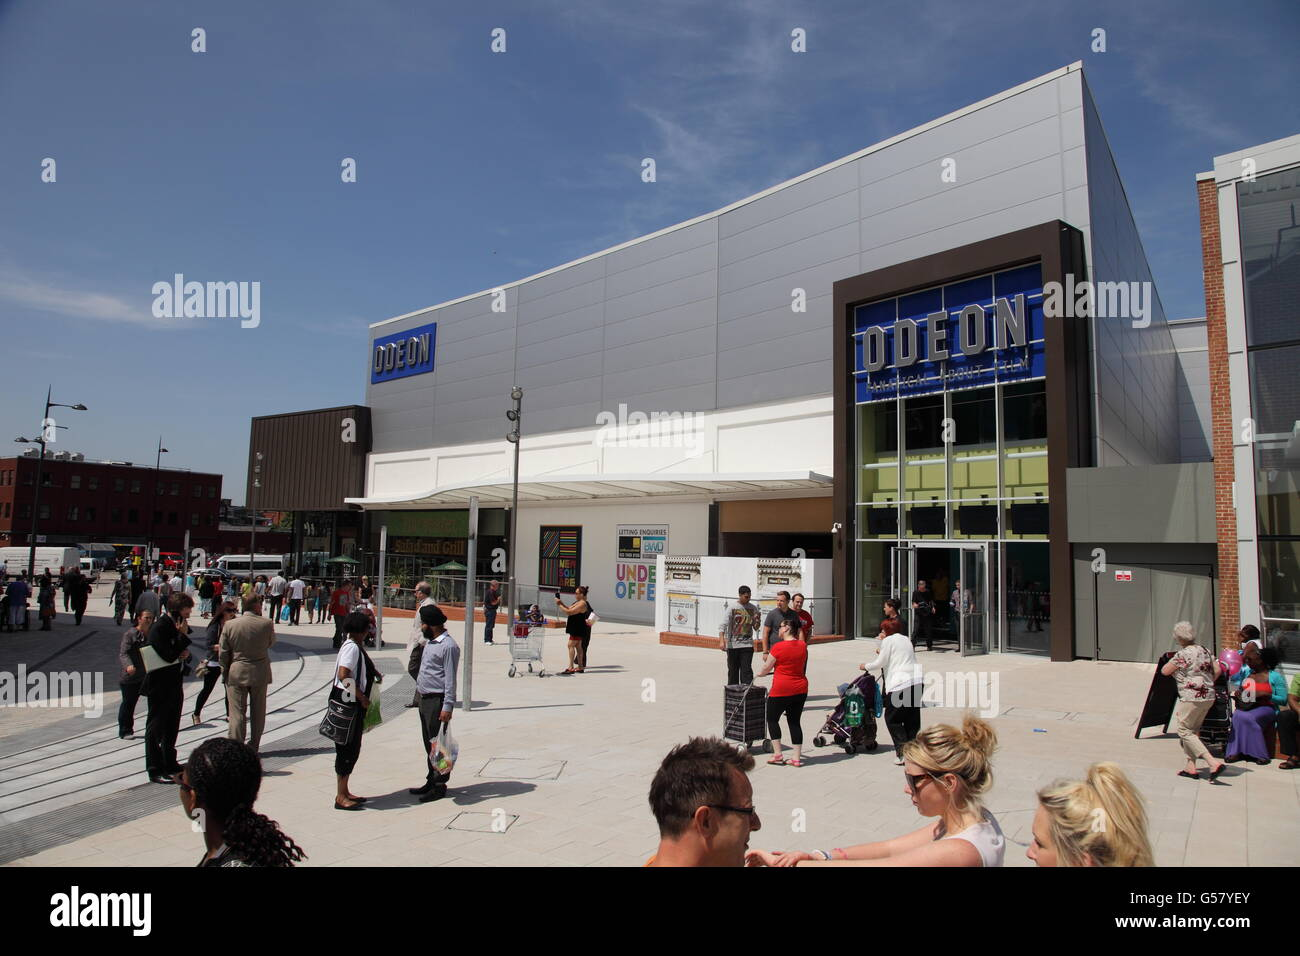 The Odeon Cinema in New Square shopping centre, West Bromwich, - Stock Image